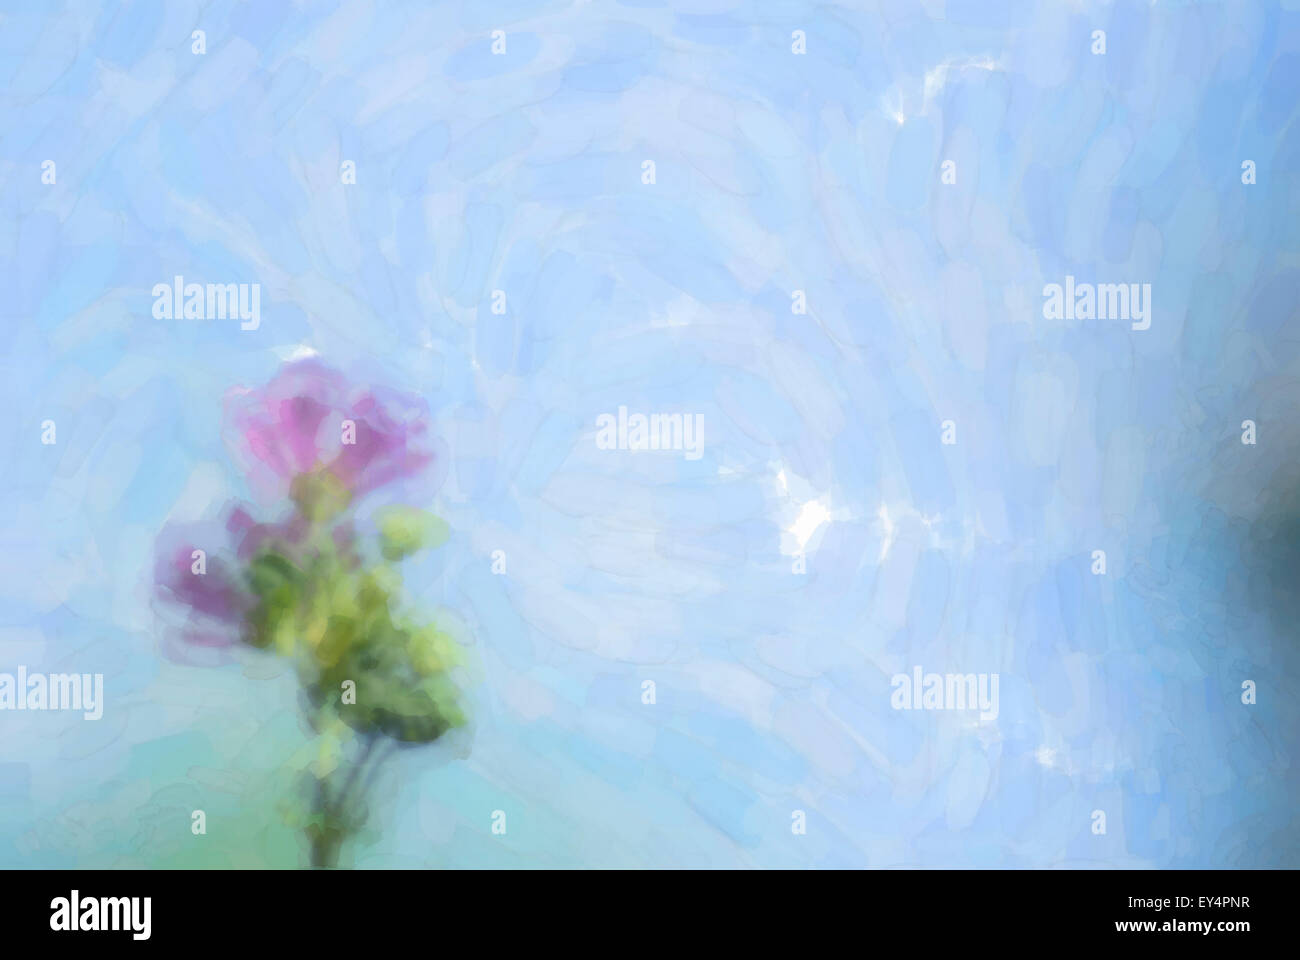 abstract digital painting backgrounds pastel tones dreamy blurred